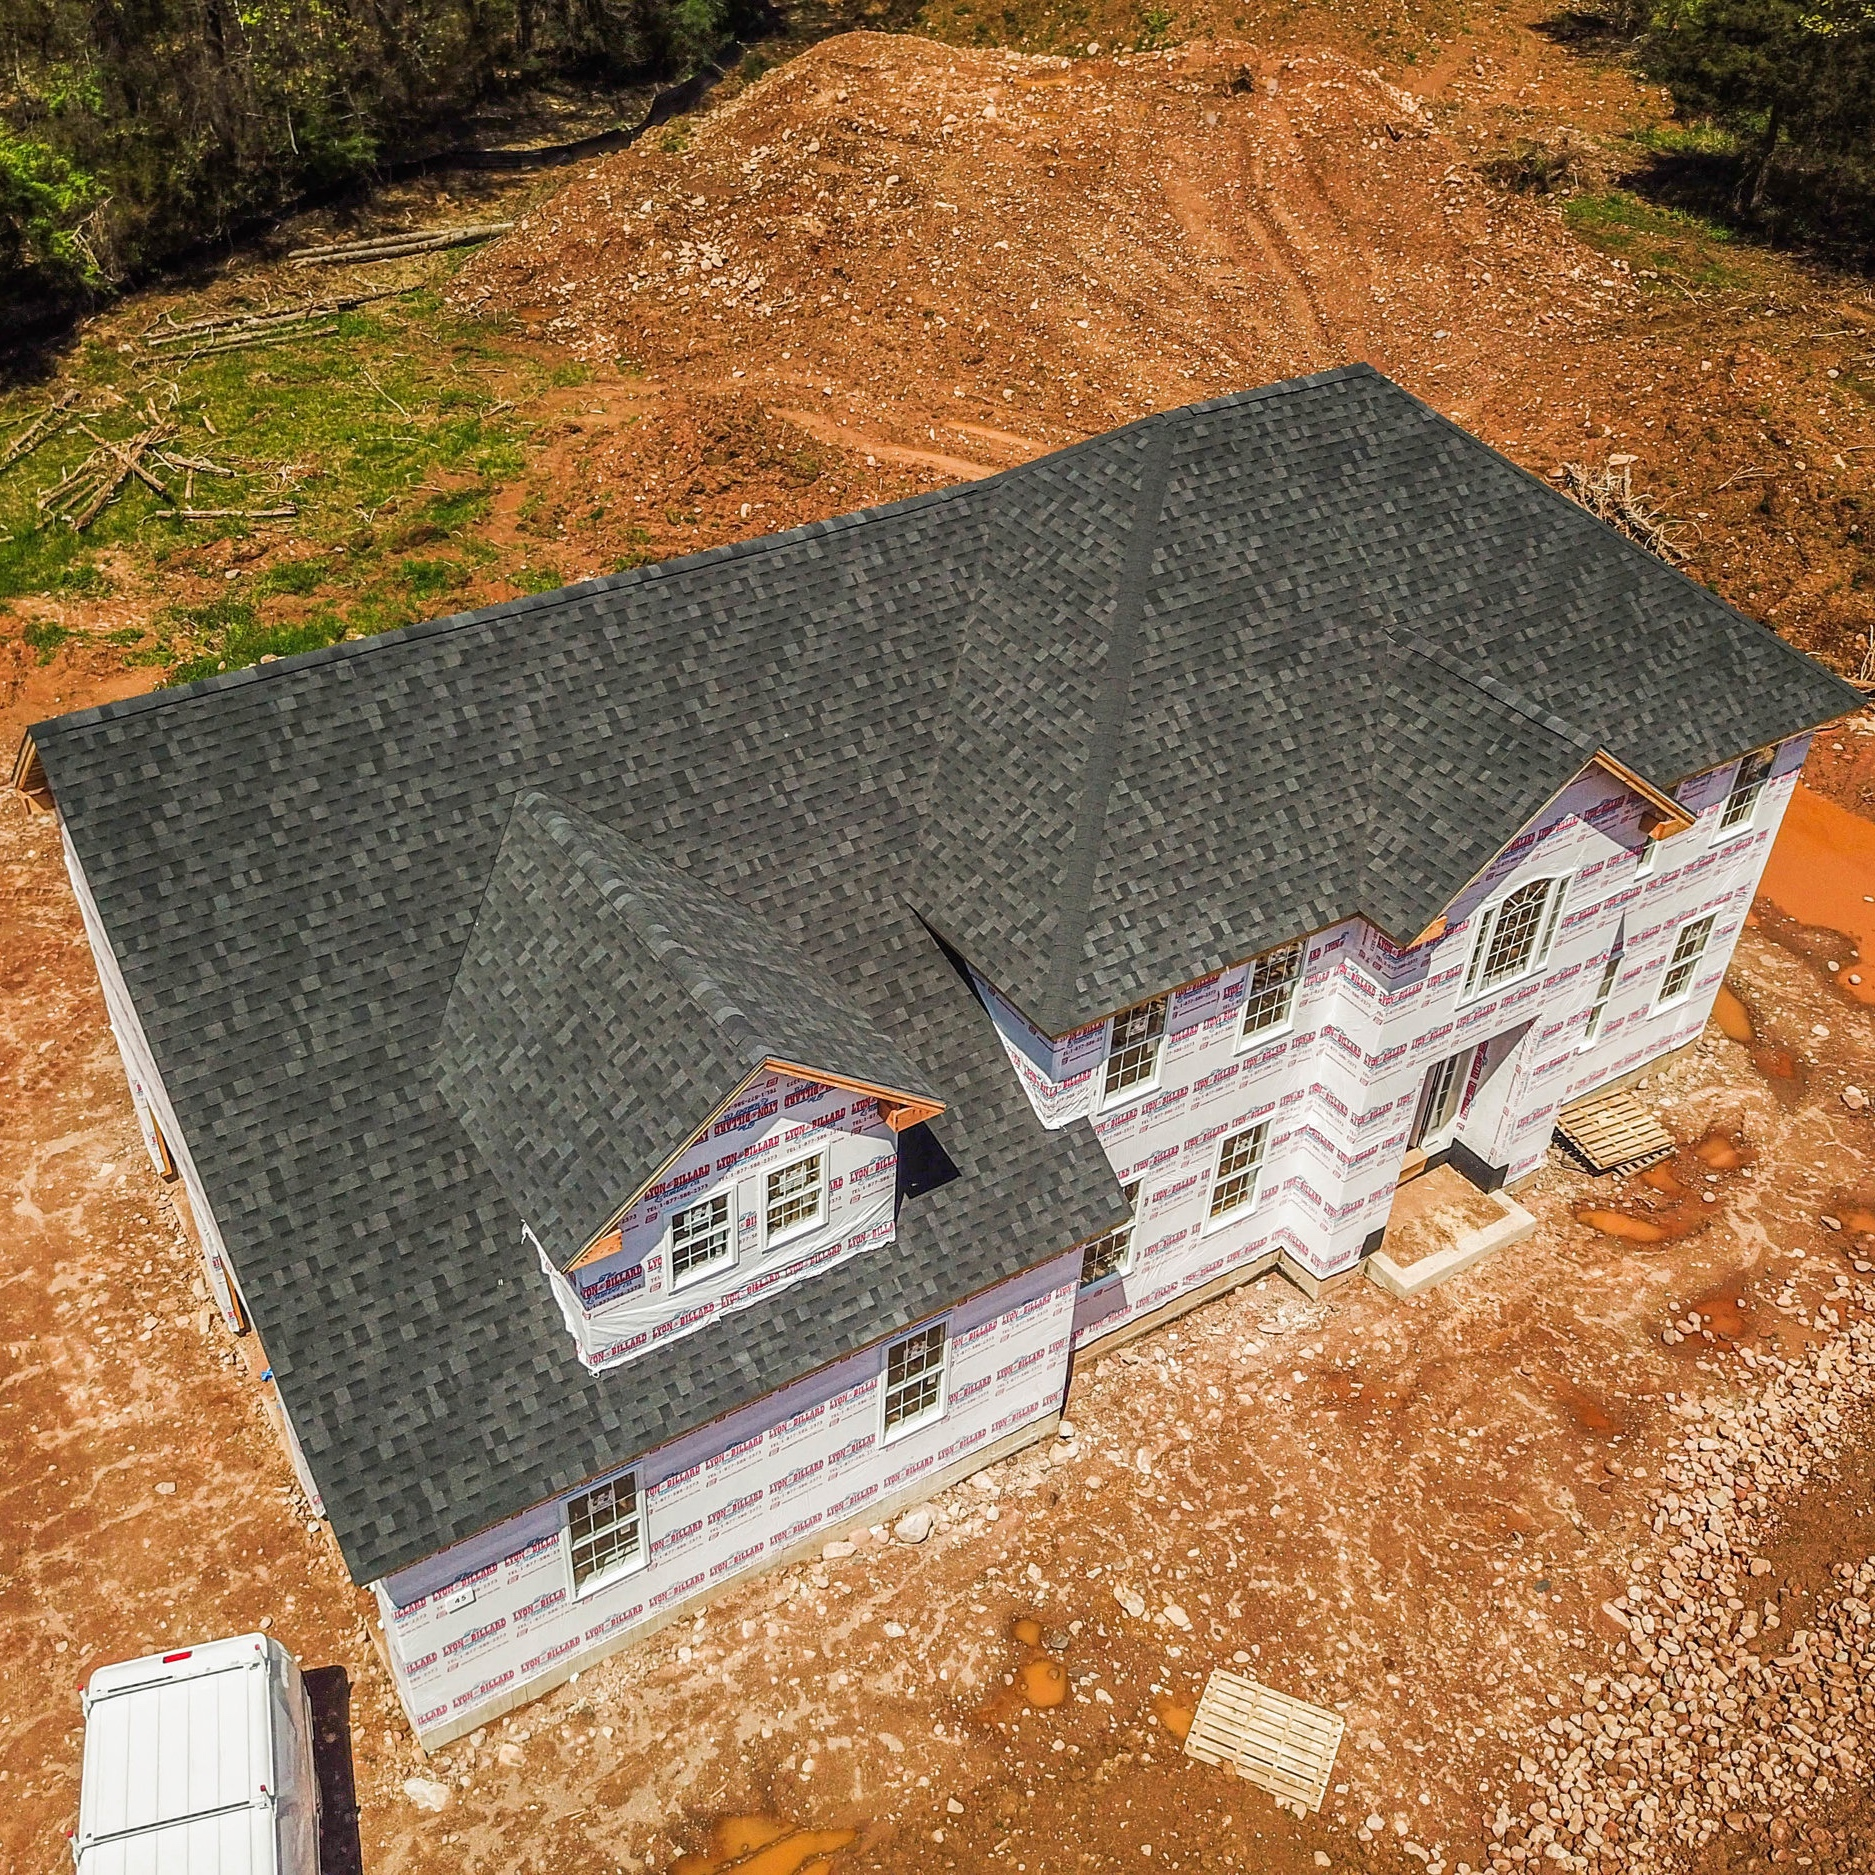 Current projects - Check out current and ongoing Pinnacle Land Development projects.